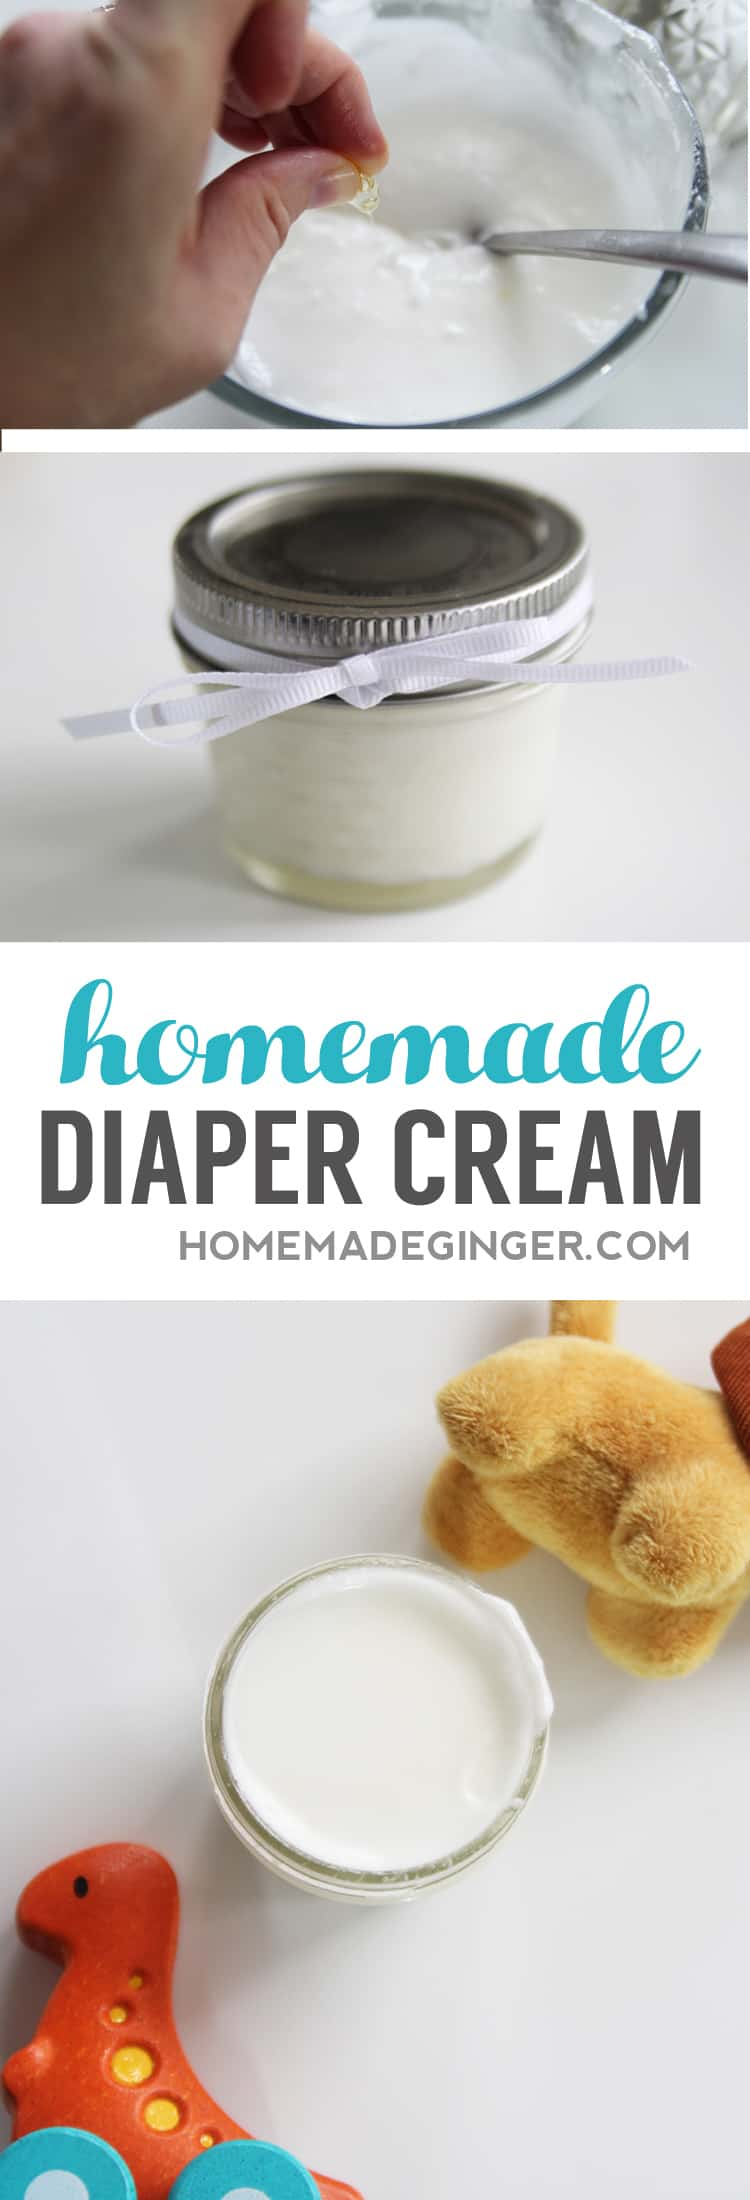 This natural homemade diaper cream is so easy to make without breaking the bank!